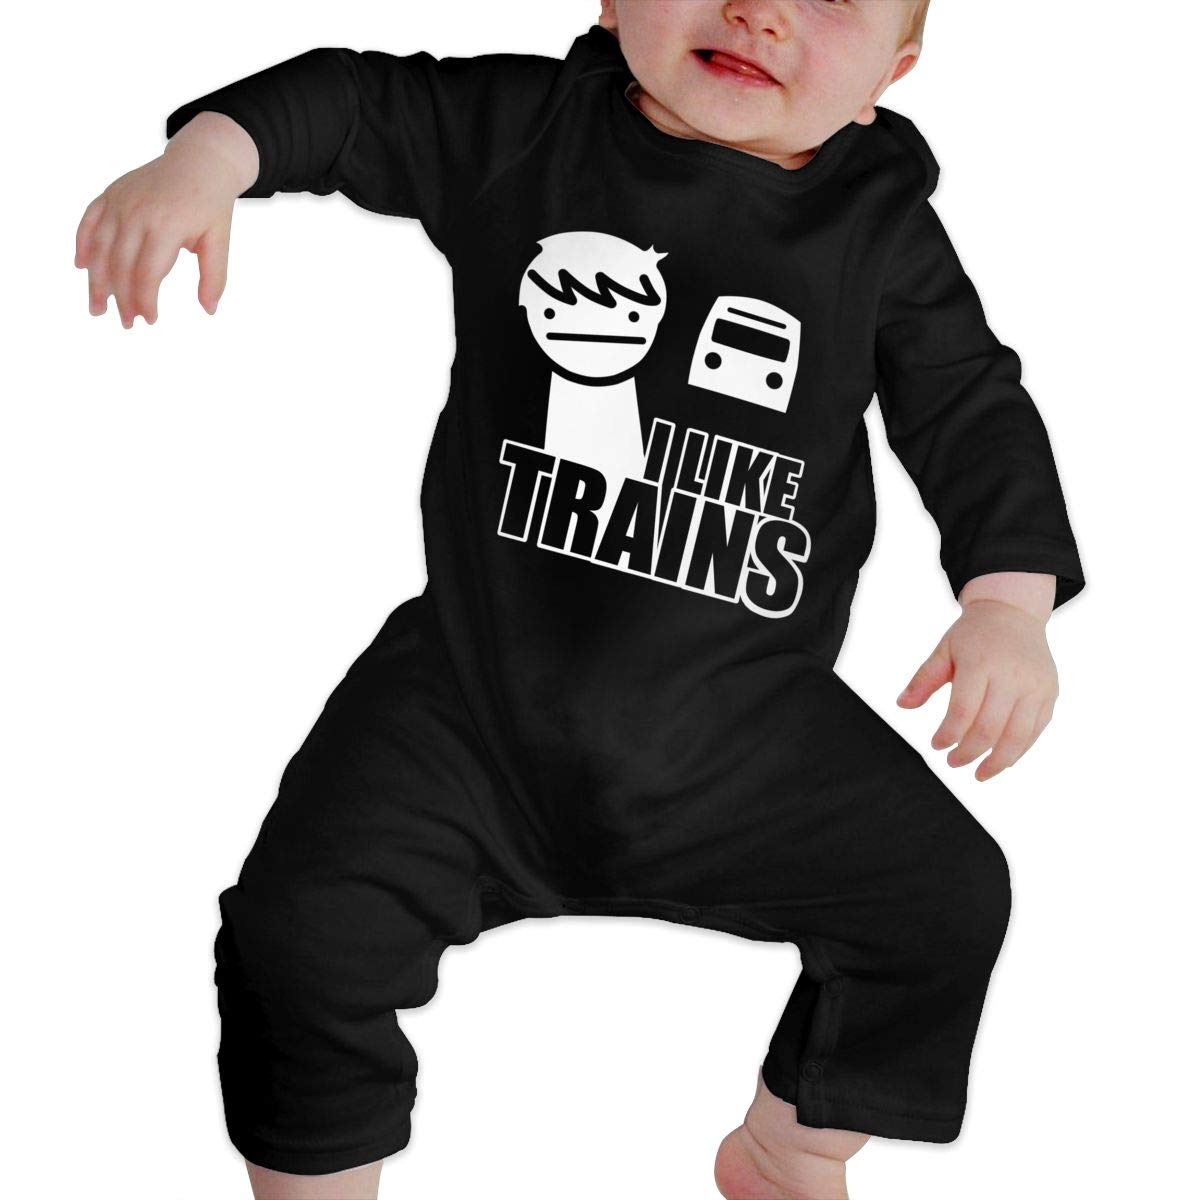 Fasenix I Like Trains Romper Jumpsuit Long Sleeve Bodysuit Overalls Outfits Clothes for Newborn Baby Boy Girl